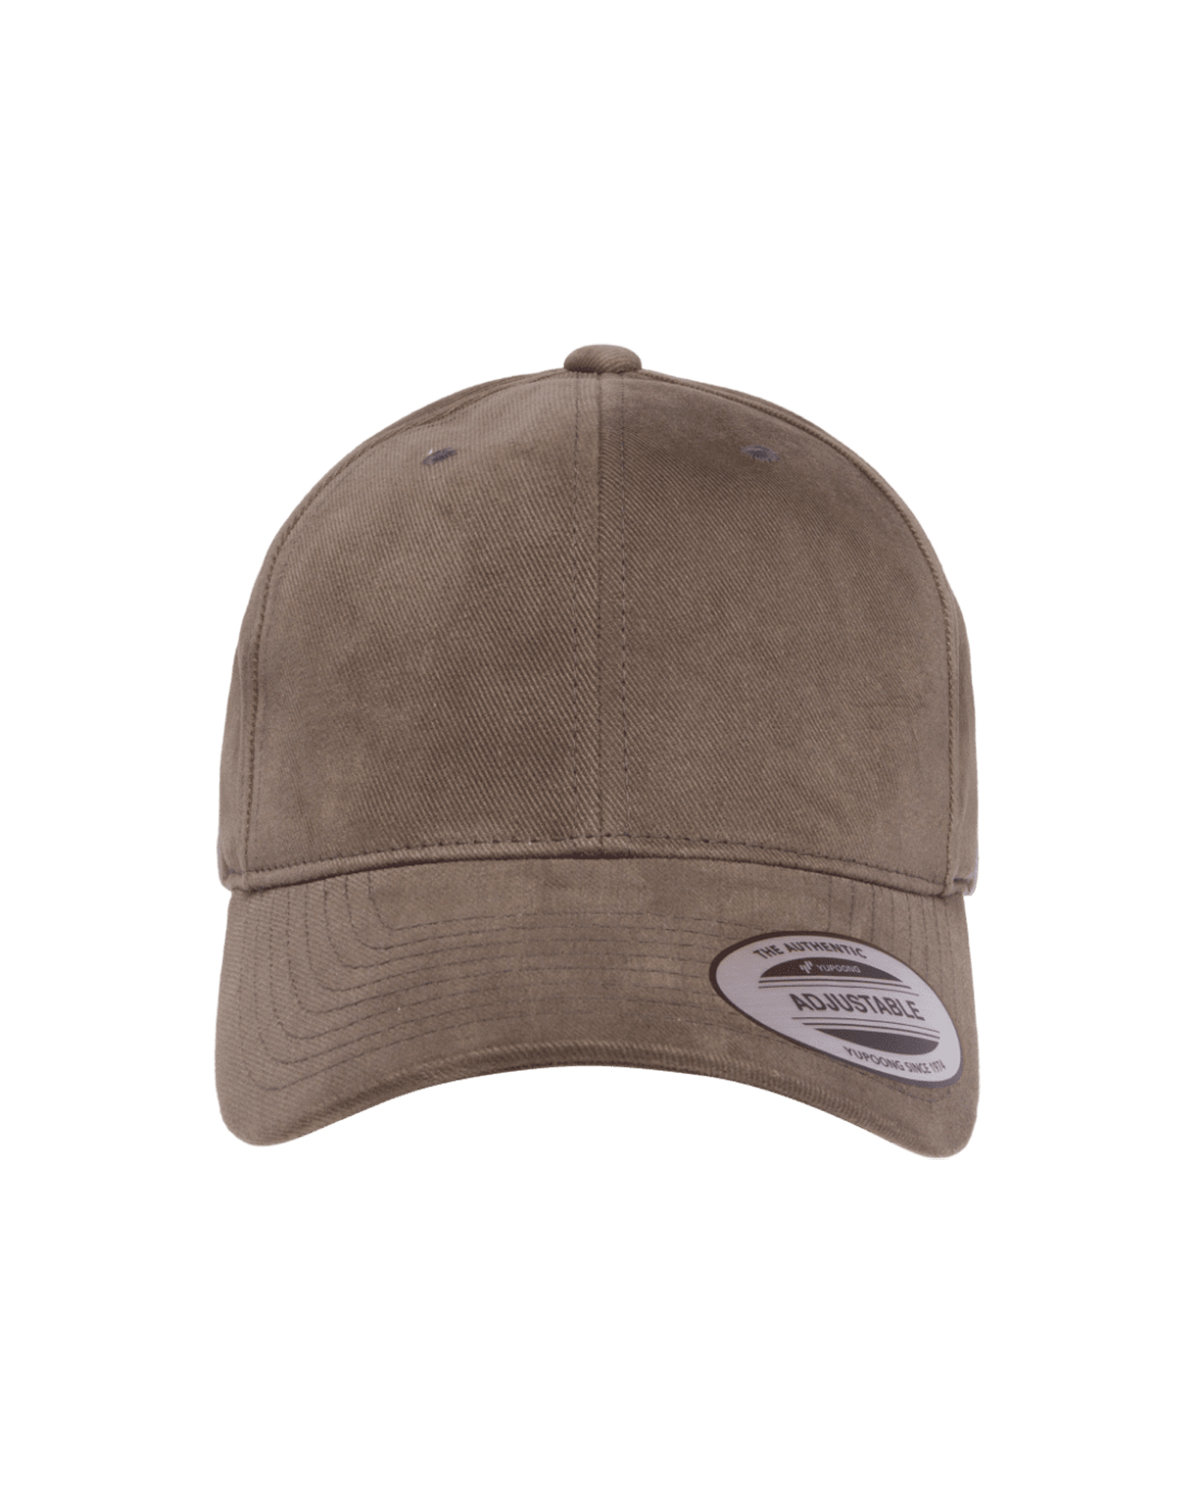 Yupoong Adult Brushed Cotton Twill Mid-Profile Cap DARK GREY